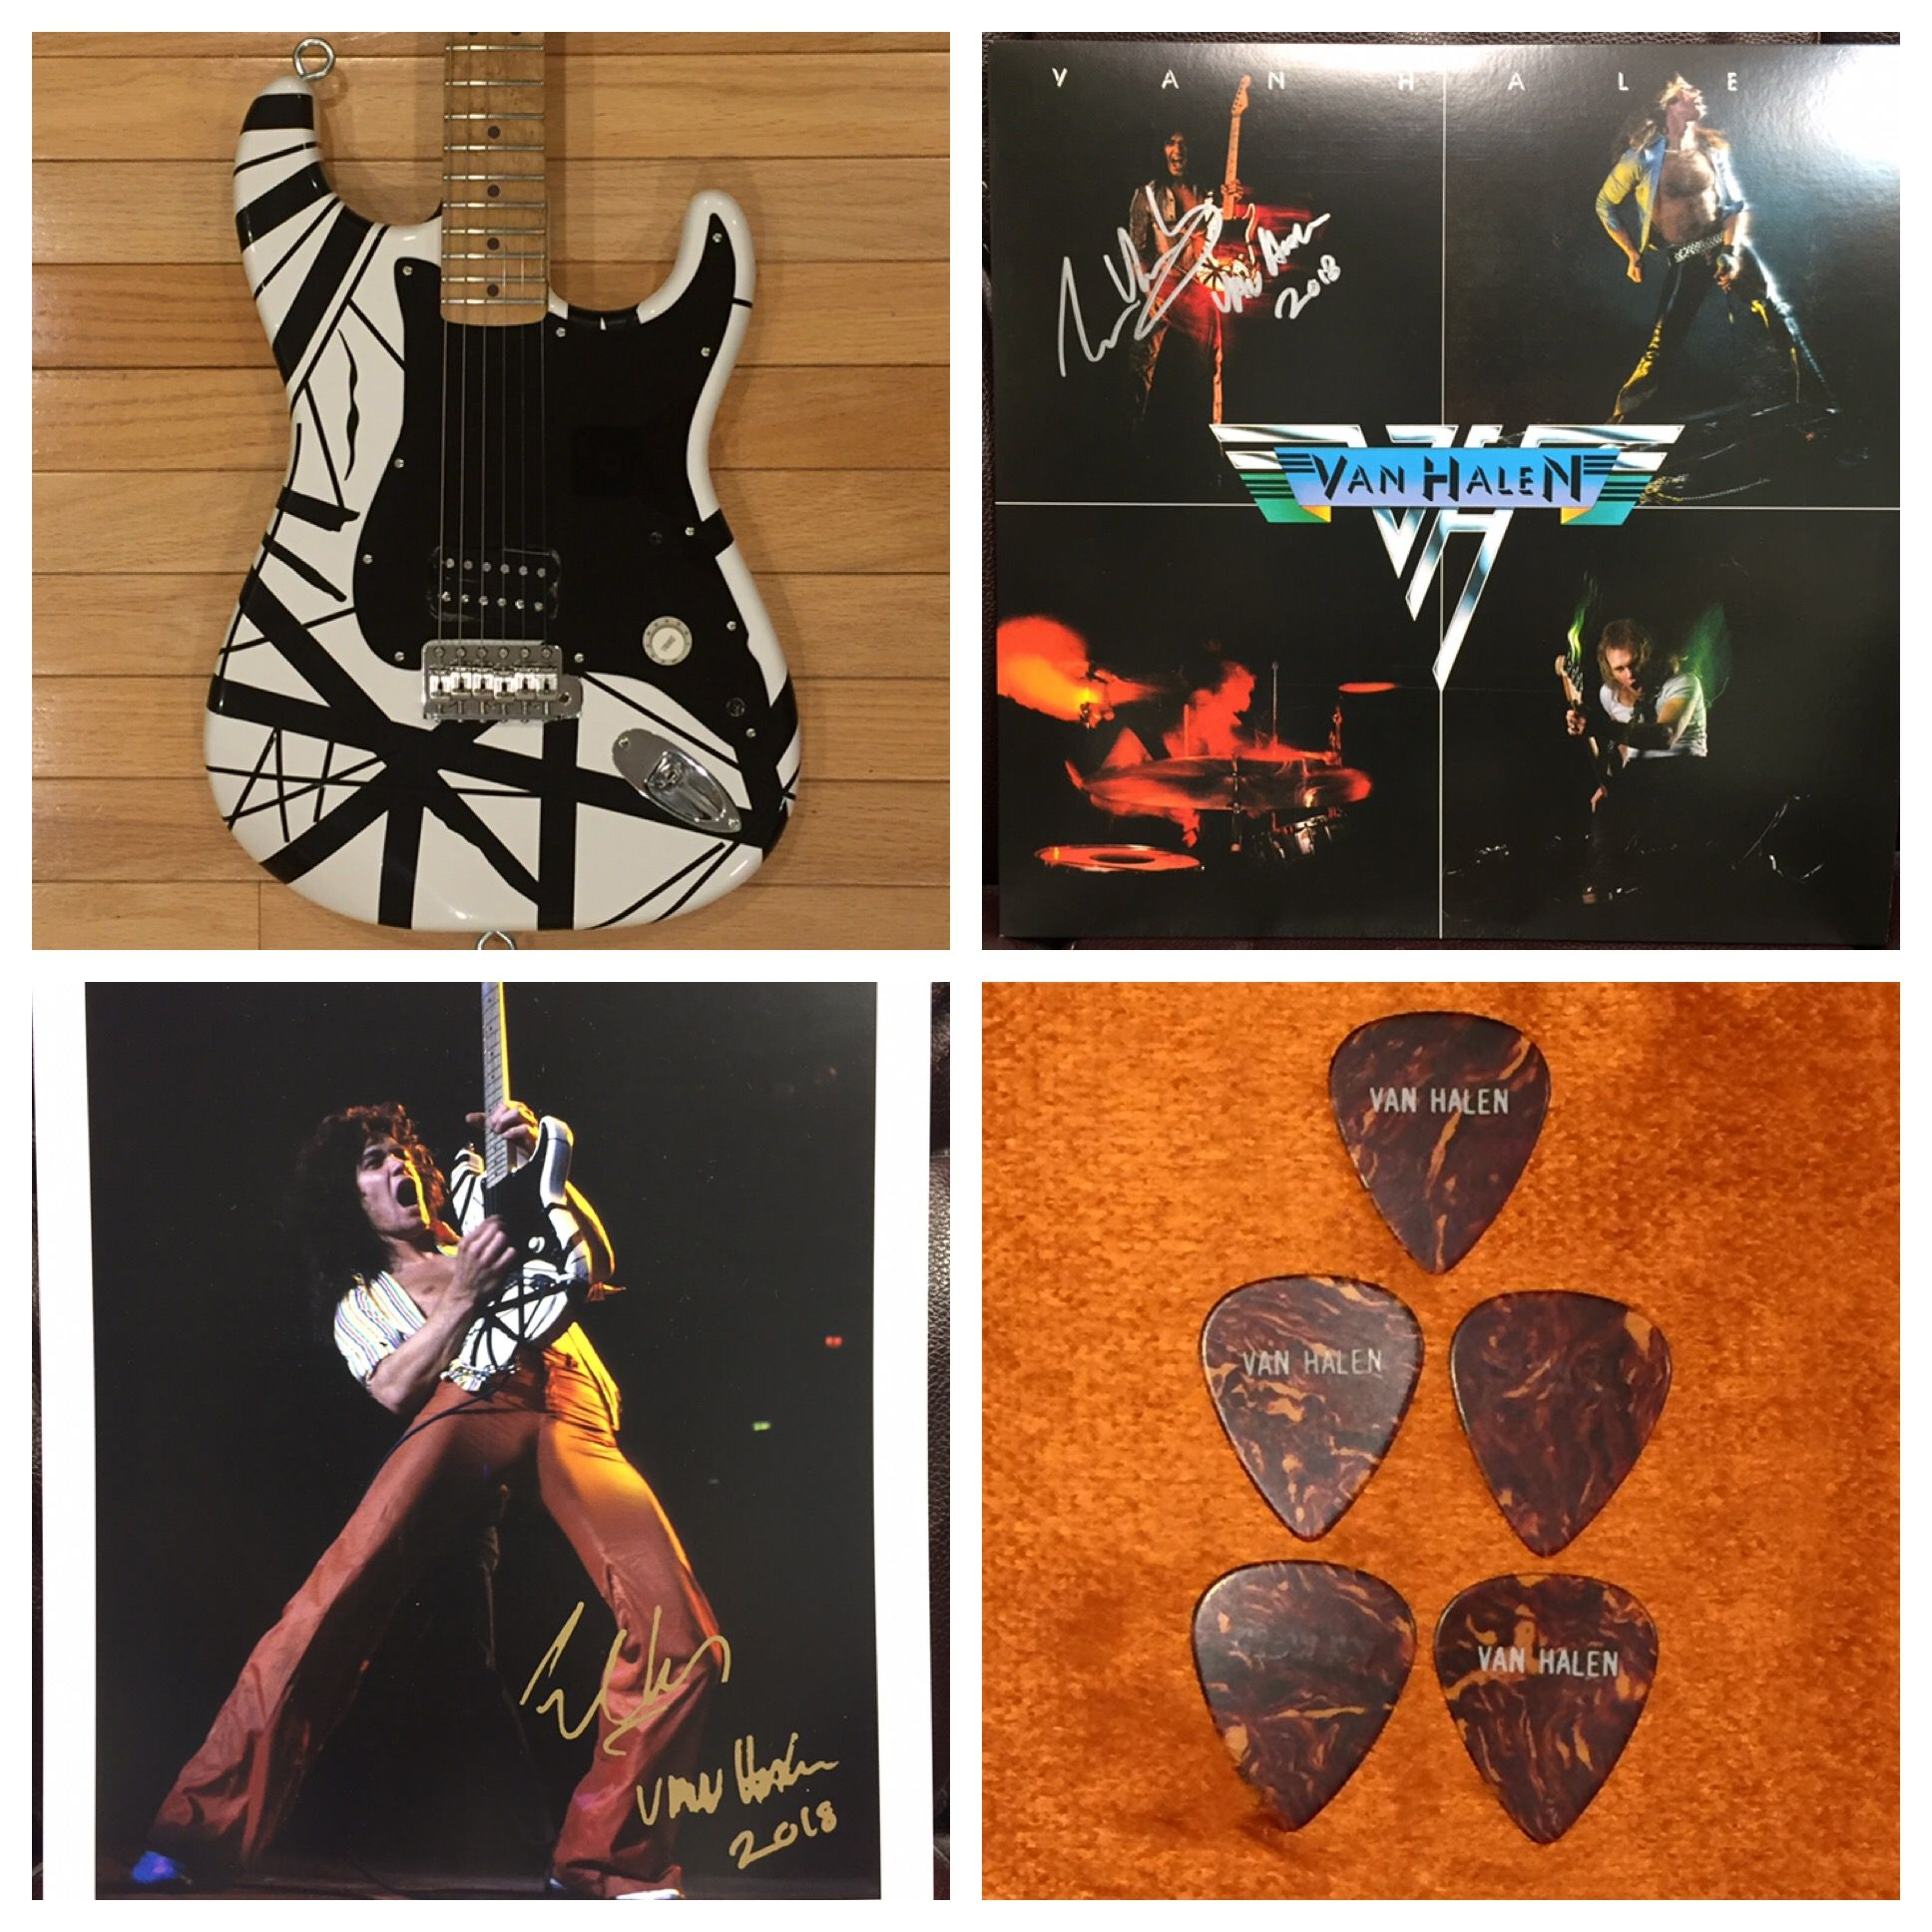 Evh Limited Edition 78 Eruption Electric Guitar W Eddie Van Halen Signed 8x10 Eddie Van Halen Signed Van Halen I Album And 5 Playing Cards Autographs Cards